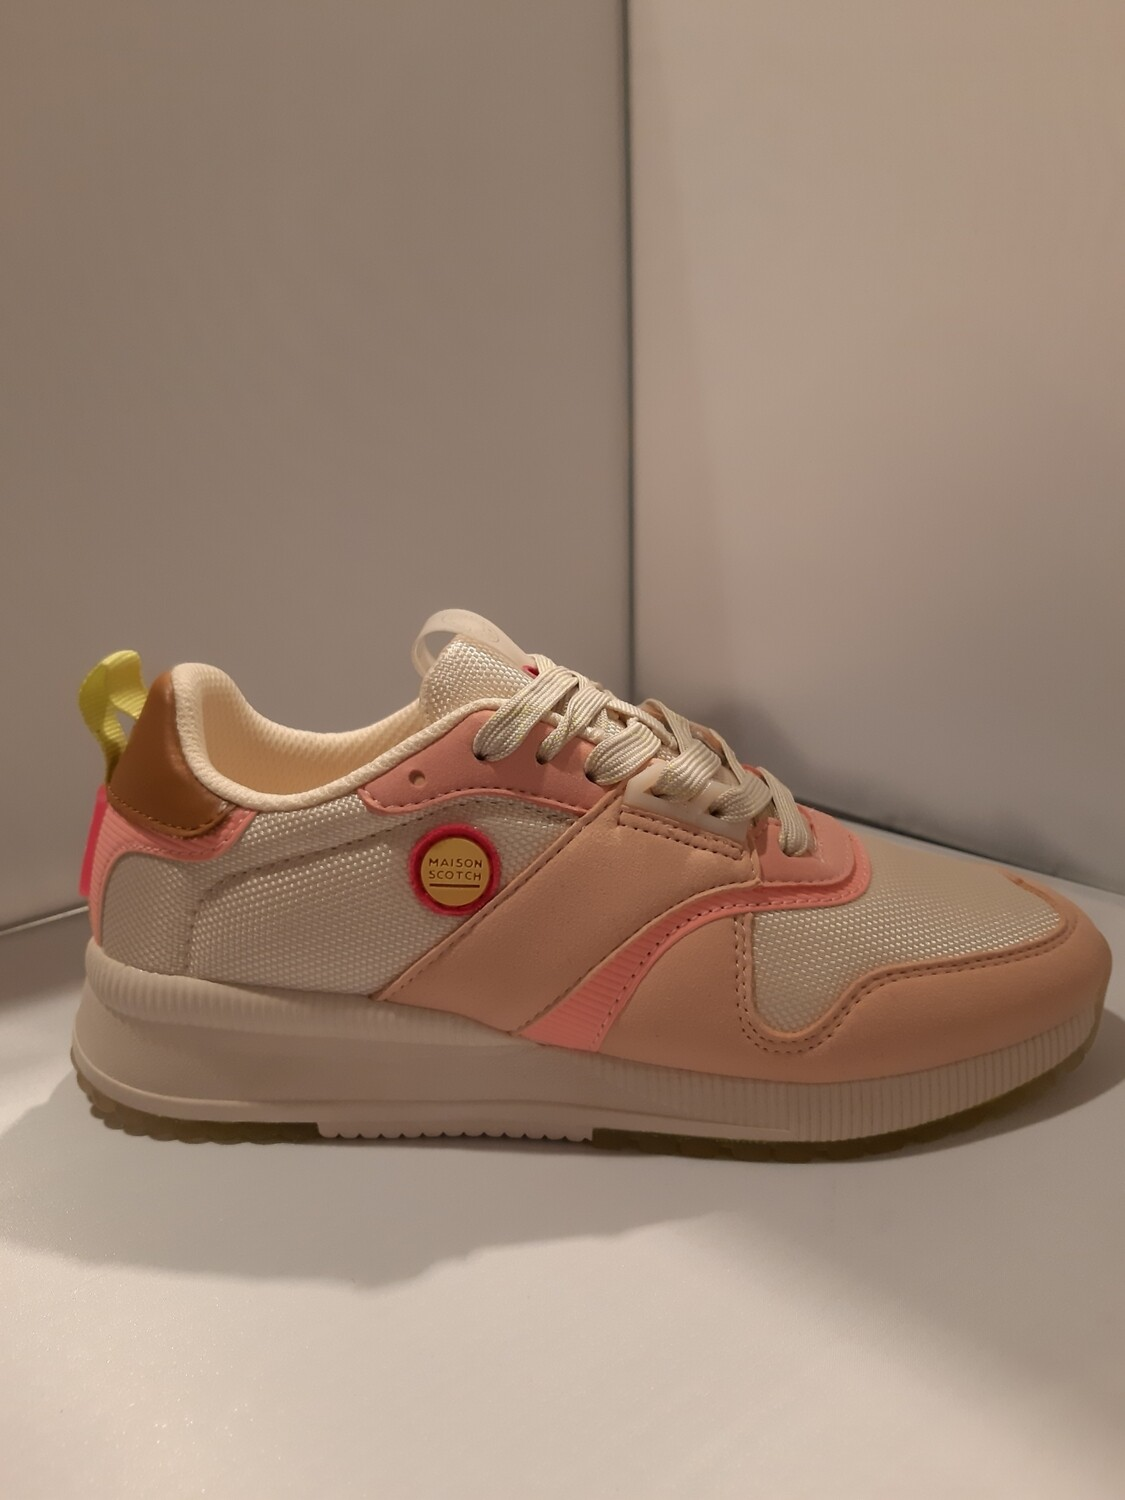 Scotch And Soda | Sneaker roze tintent met felle accenten